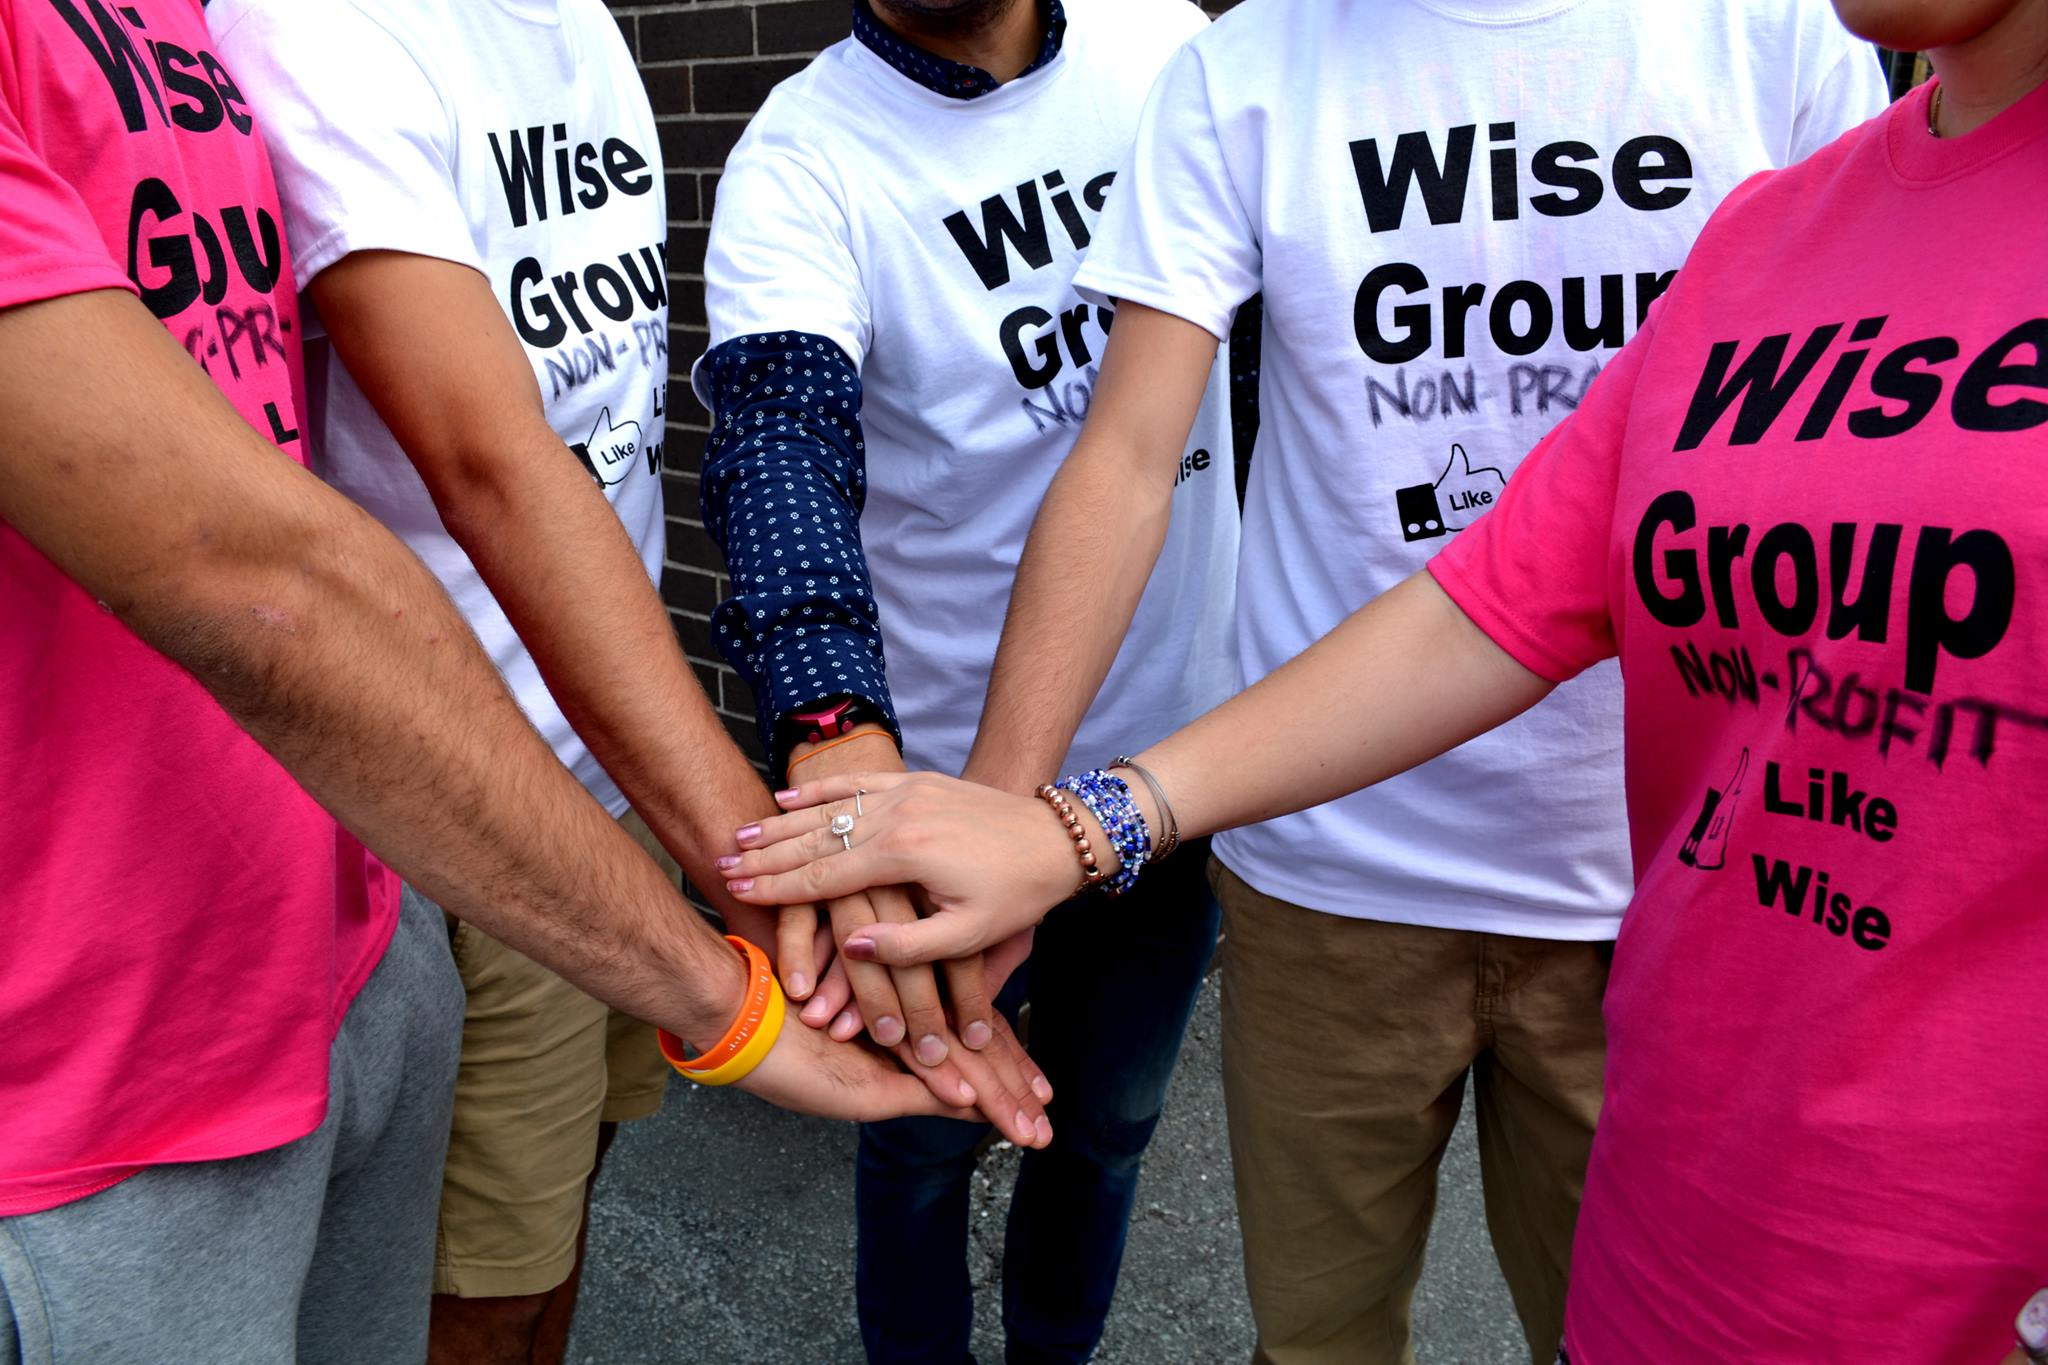 Wise Group Non-Profit Logo